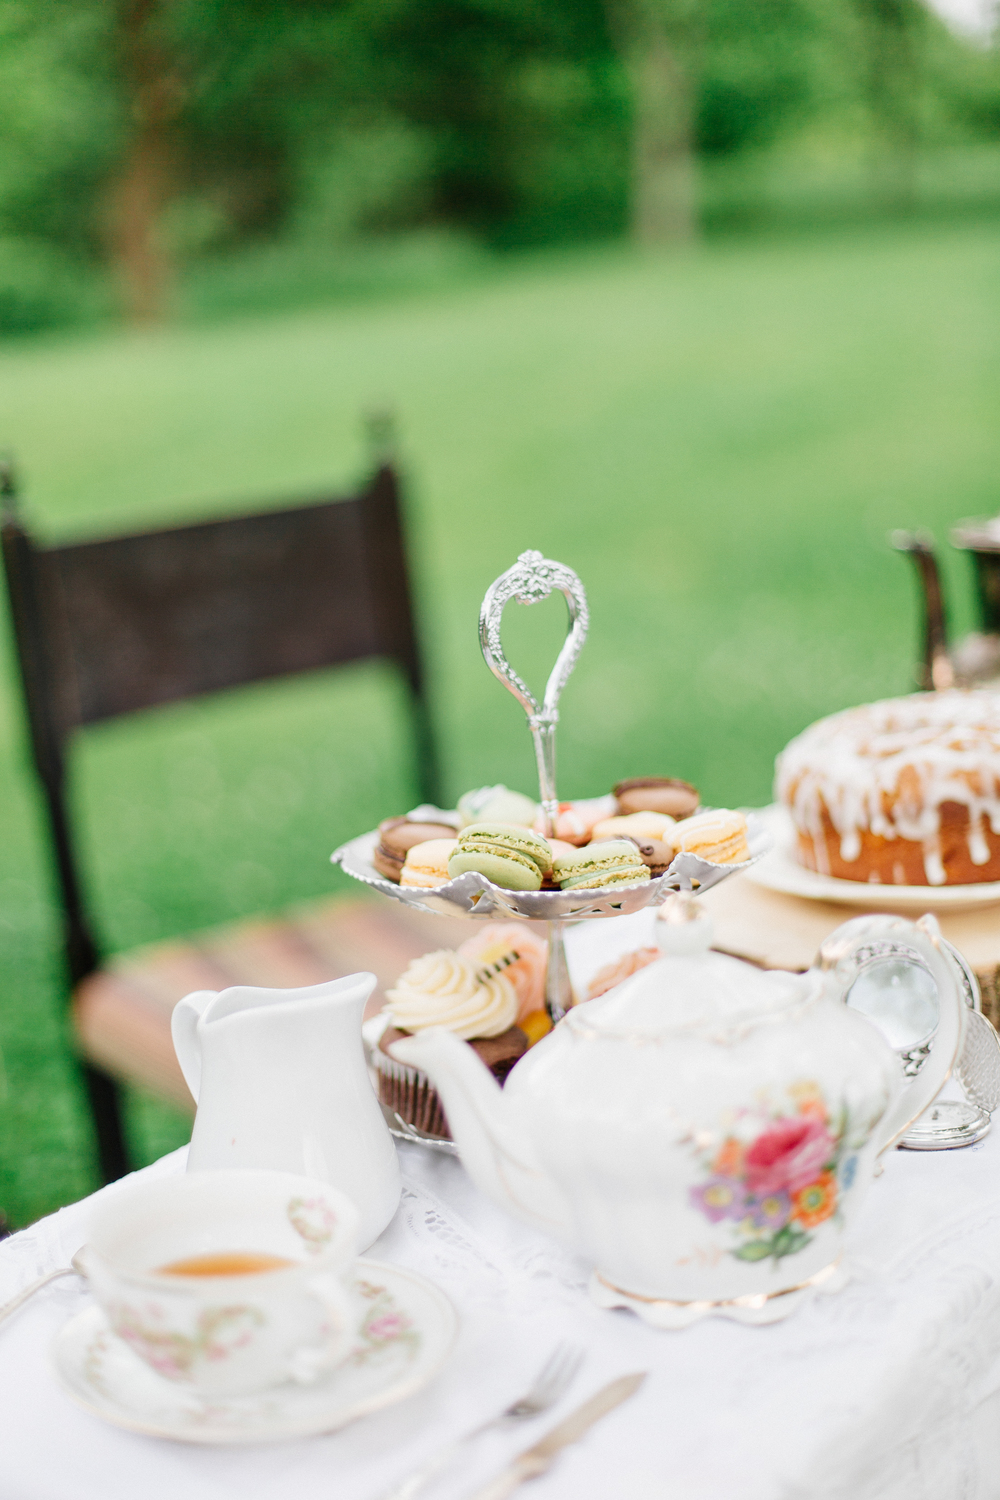 wedding_photographer_minnesota_jen_montgomery_photography[teaparty]-9.jpg